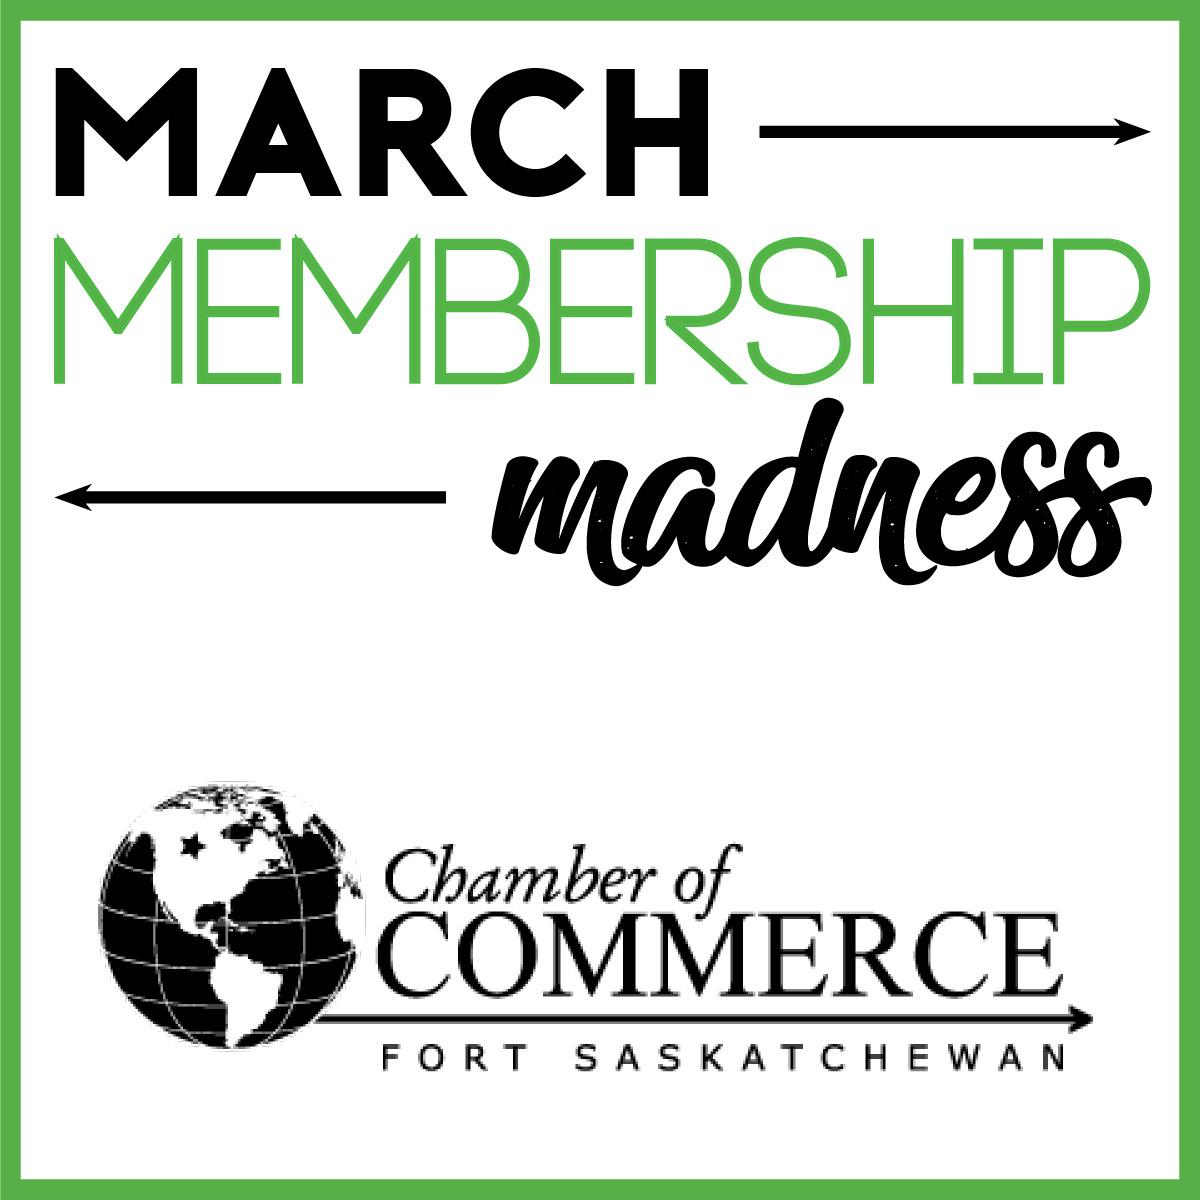 Want a chance to win $250 toward your 2020 membership? Details here: https://www.fortsaskchamber.com/march-membership-madness…